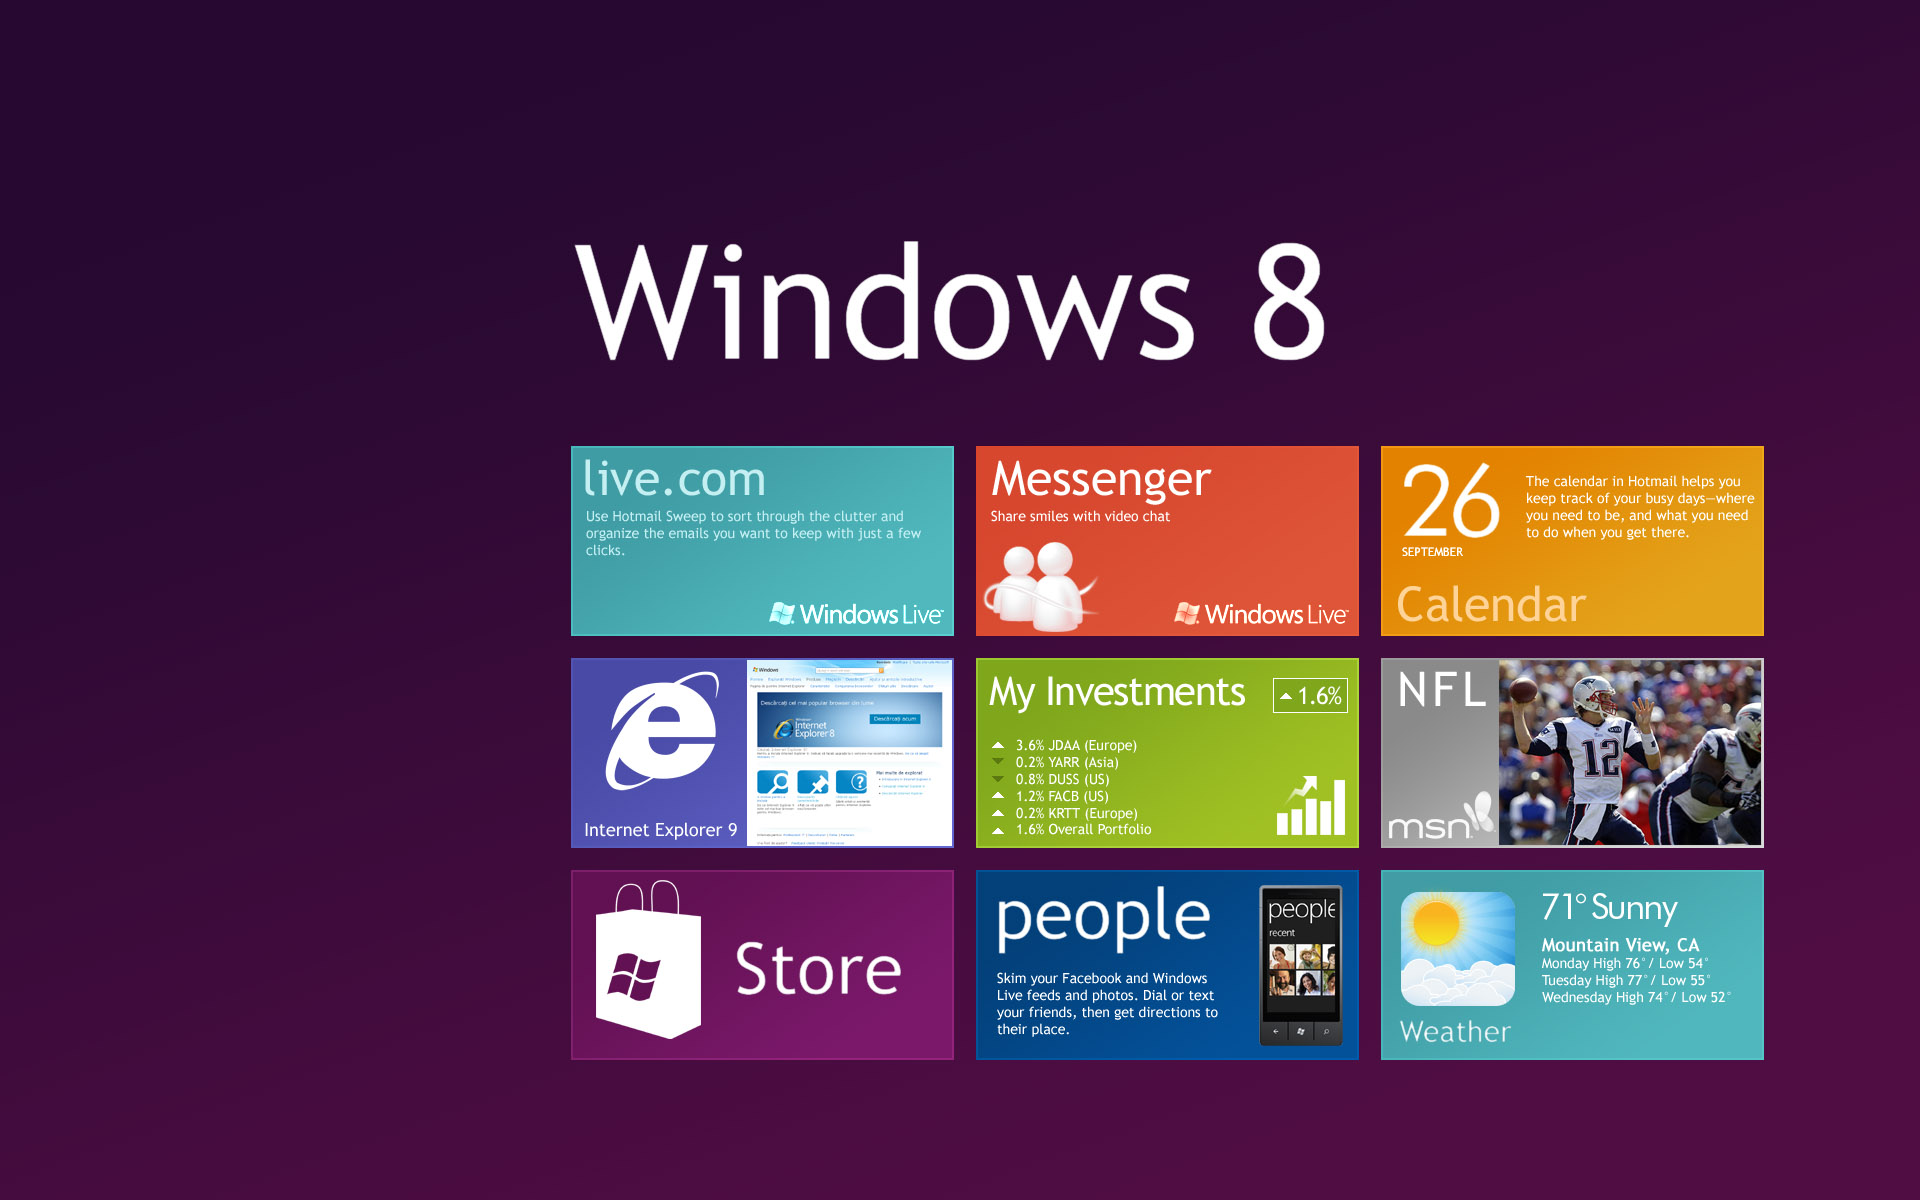 Windows-8 Hd Wallpapers Free Download - Windows 8 Advantages , HD Wallpaper & Backgrounds